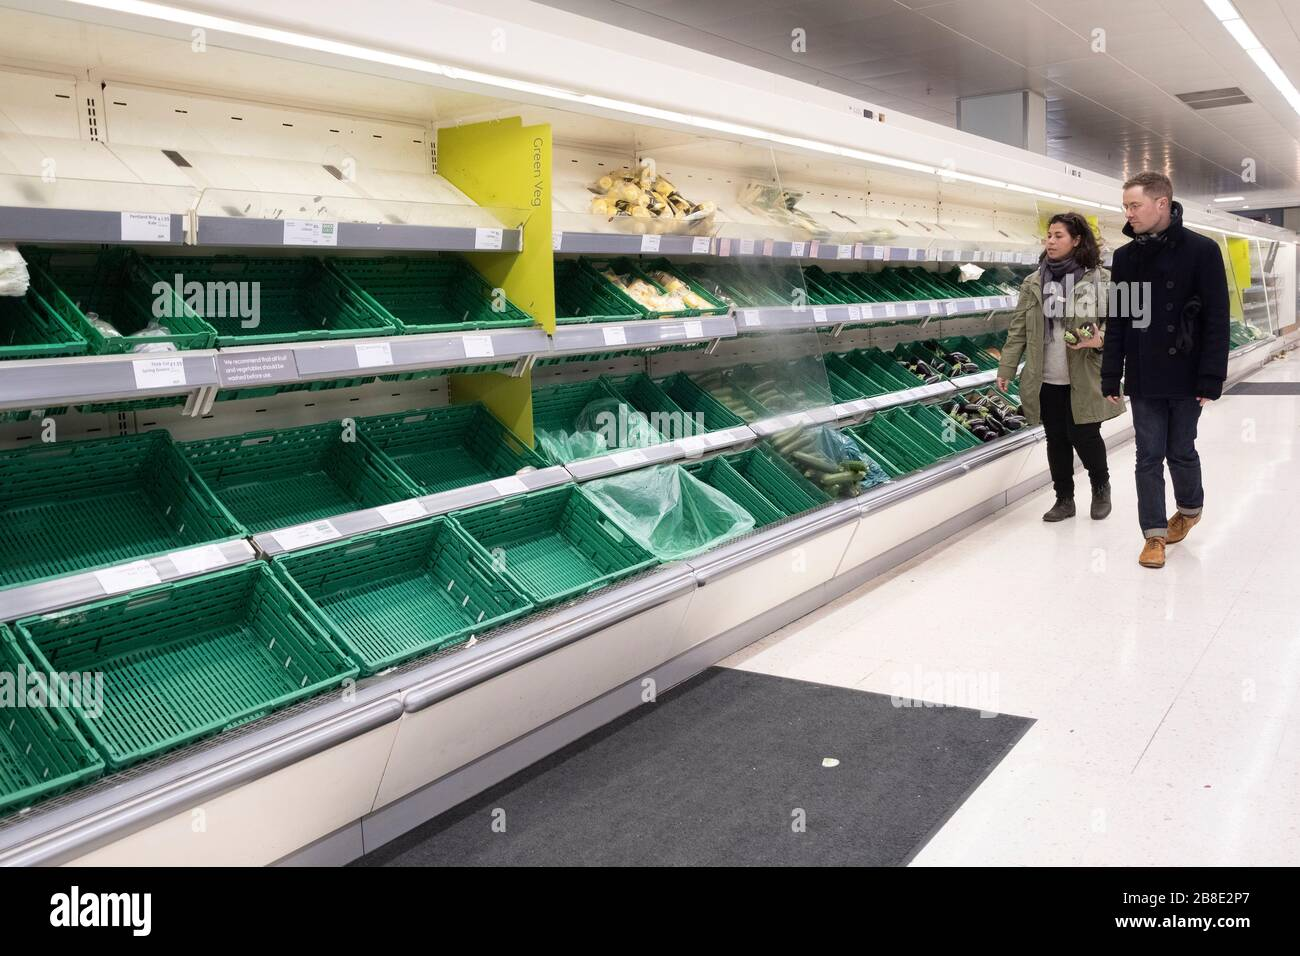 London, UK. 21st Mar, 2020. People walk by almost-empty shelves of a supermarket in London, Britain, March 21, 2020. As of 9a.m. (0900GMT) on Saturday, 72,818 people have been tested in Britain, of which 67,800 were confirmed negative and 5,018 were confirmed positive. 233 patients in the country who tested positive for the virus have died. Credit: Xinhua/Alamy Live News Stock Photo